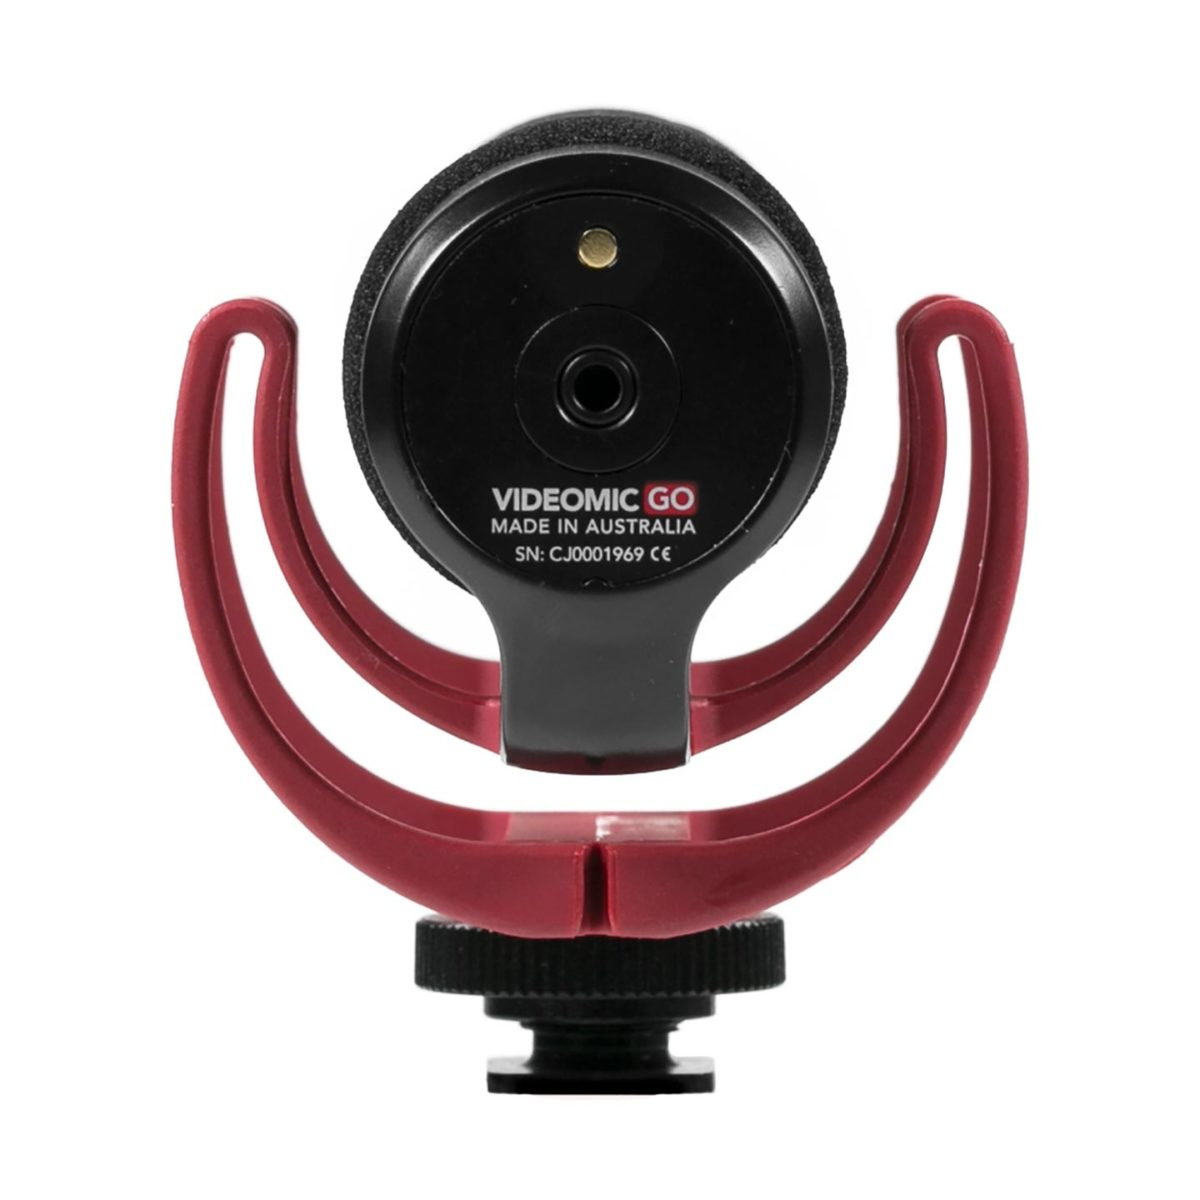 rode_videomic_go_03